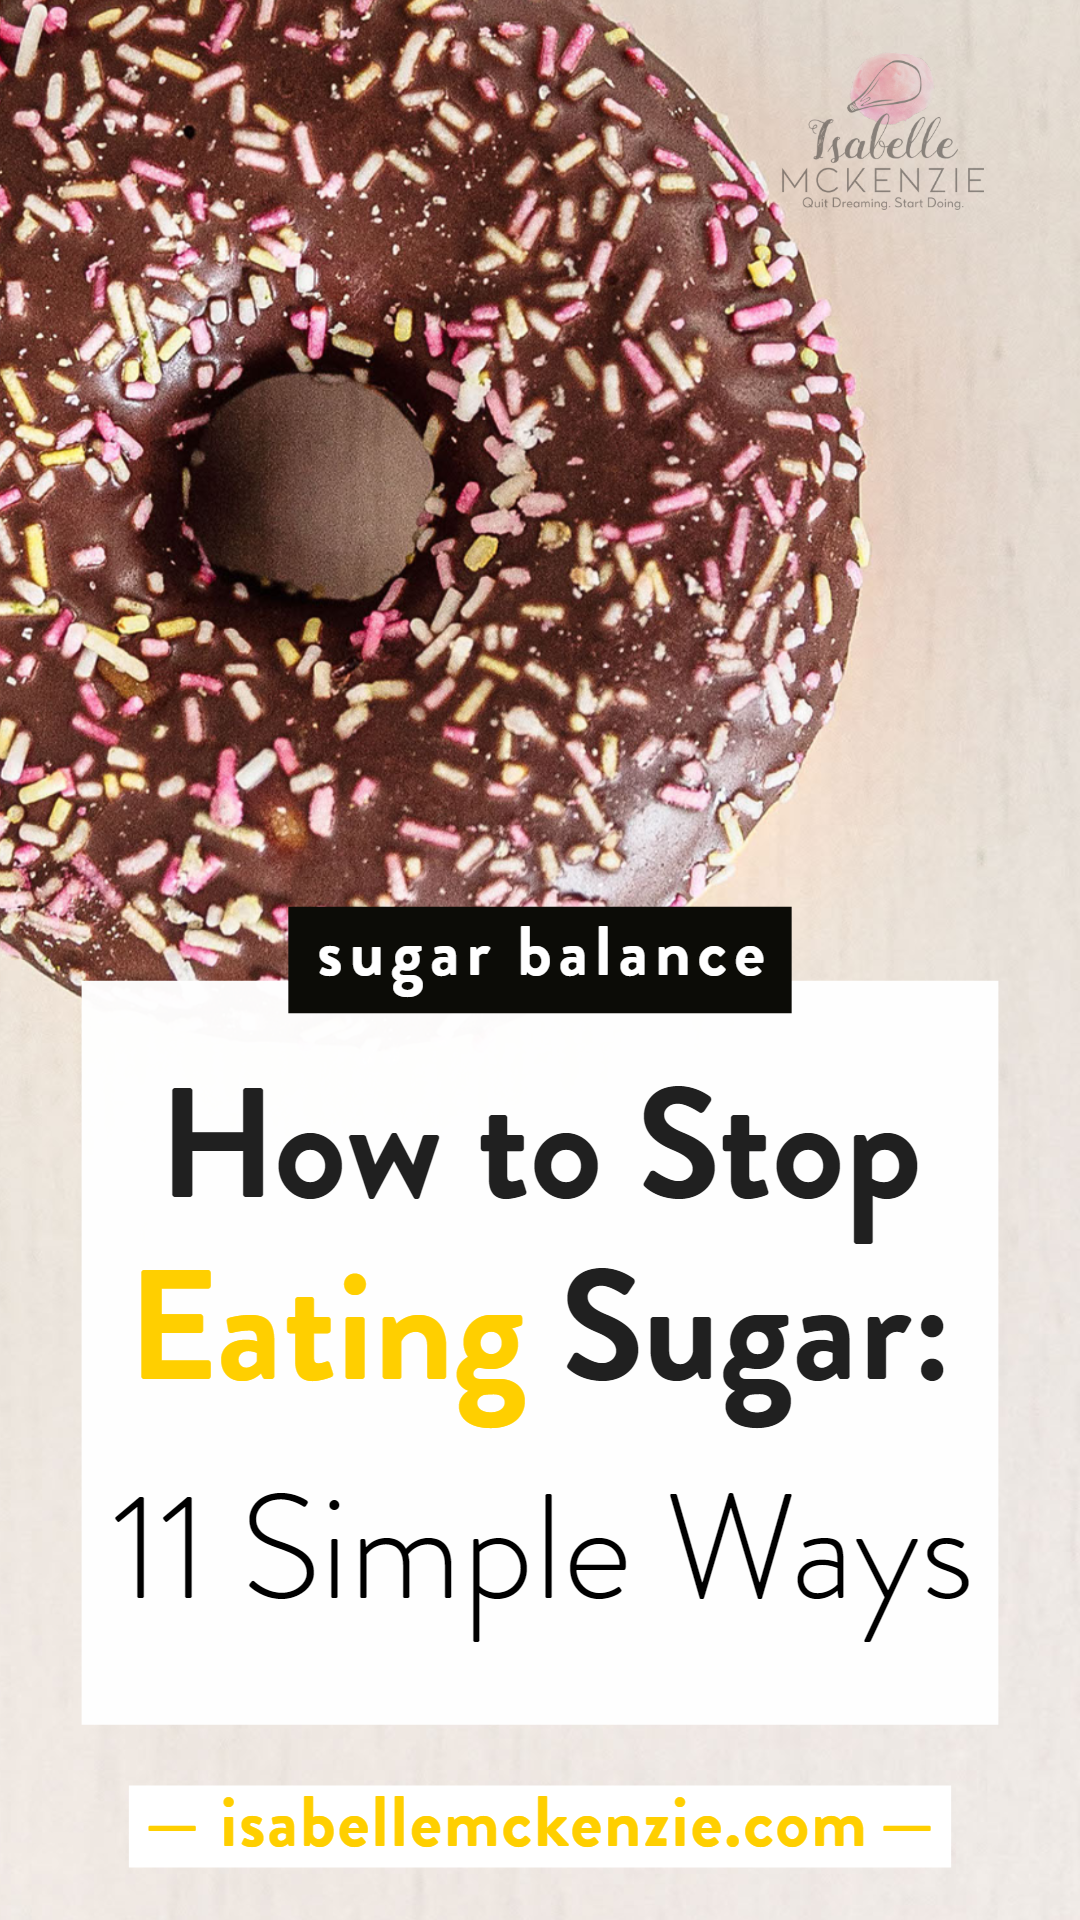 How to Stop Eating Sugar: 11 Simple Ways